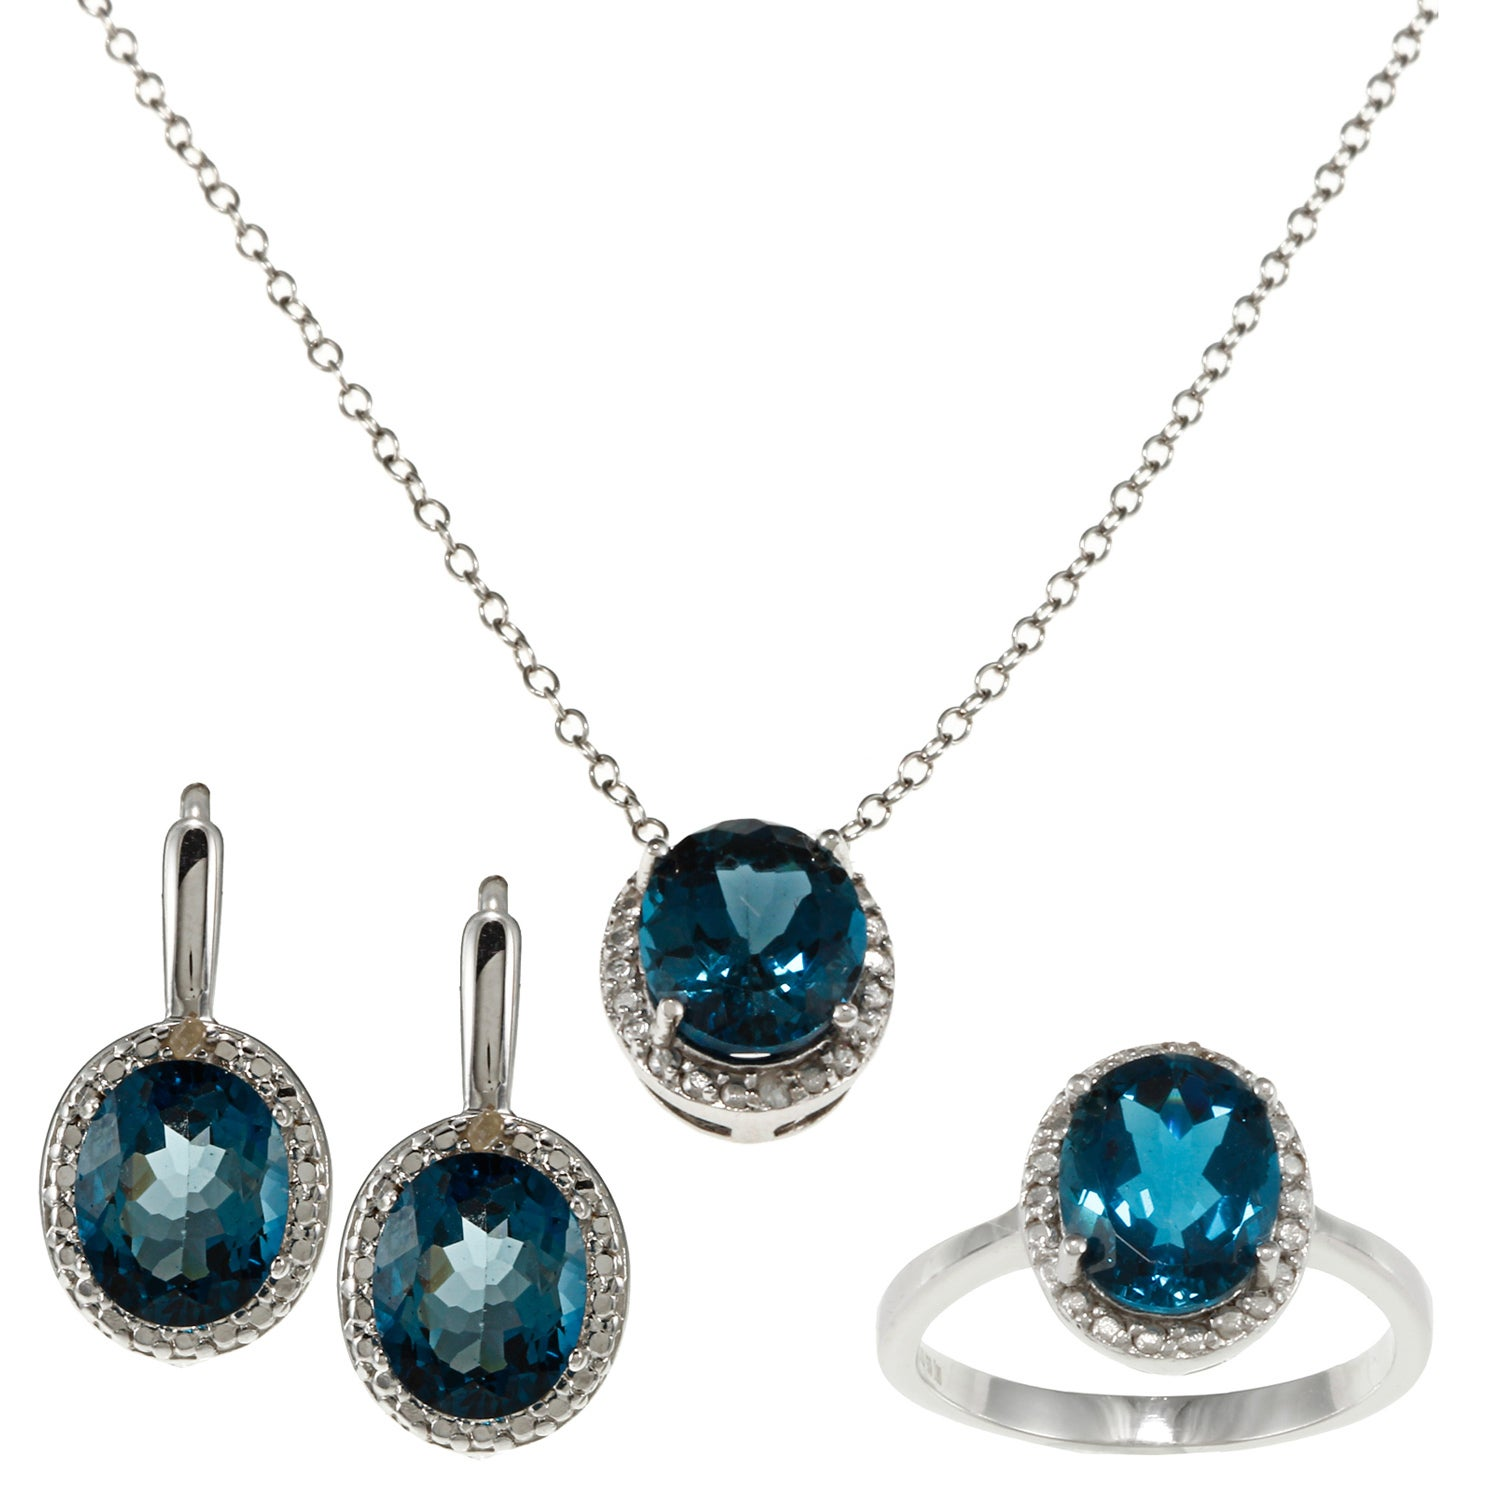 SALE 21 Inch Blue Gemstone Sterling Silver Necklace with Earrings